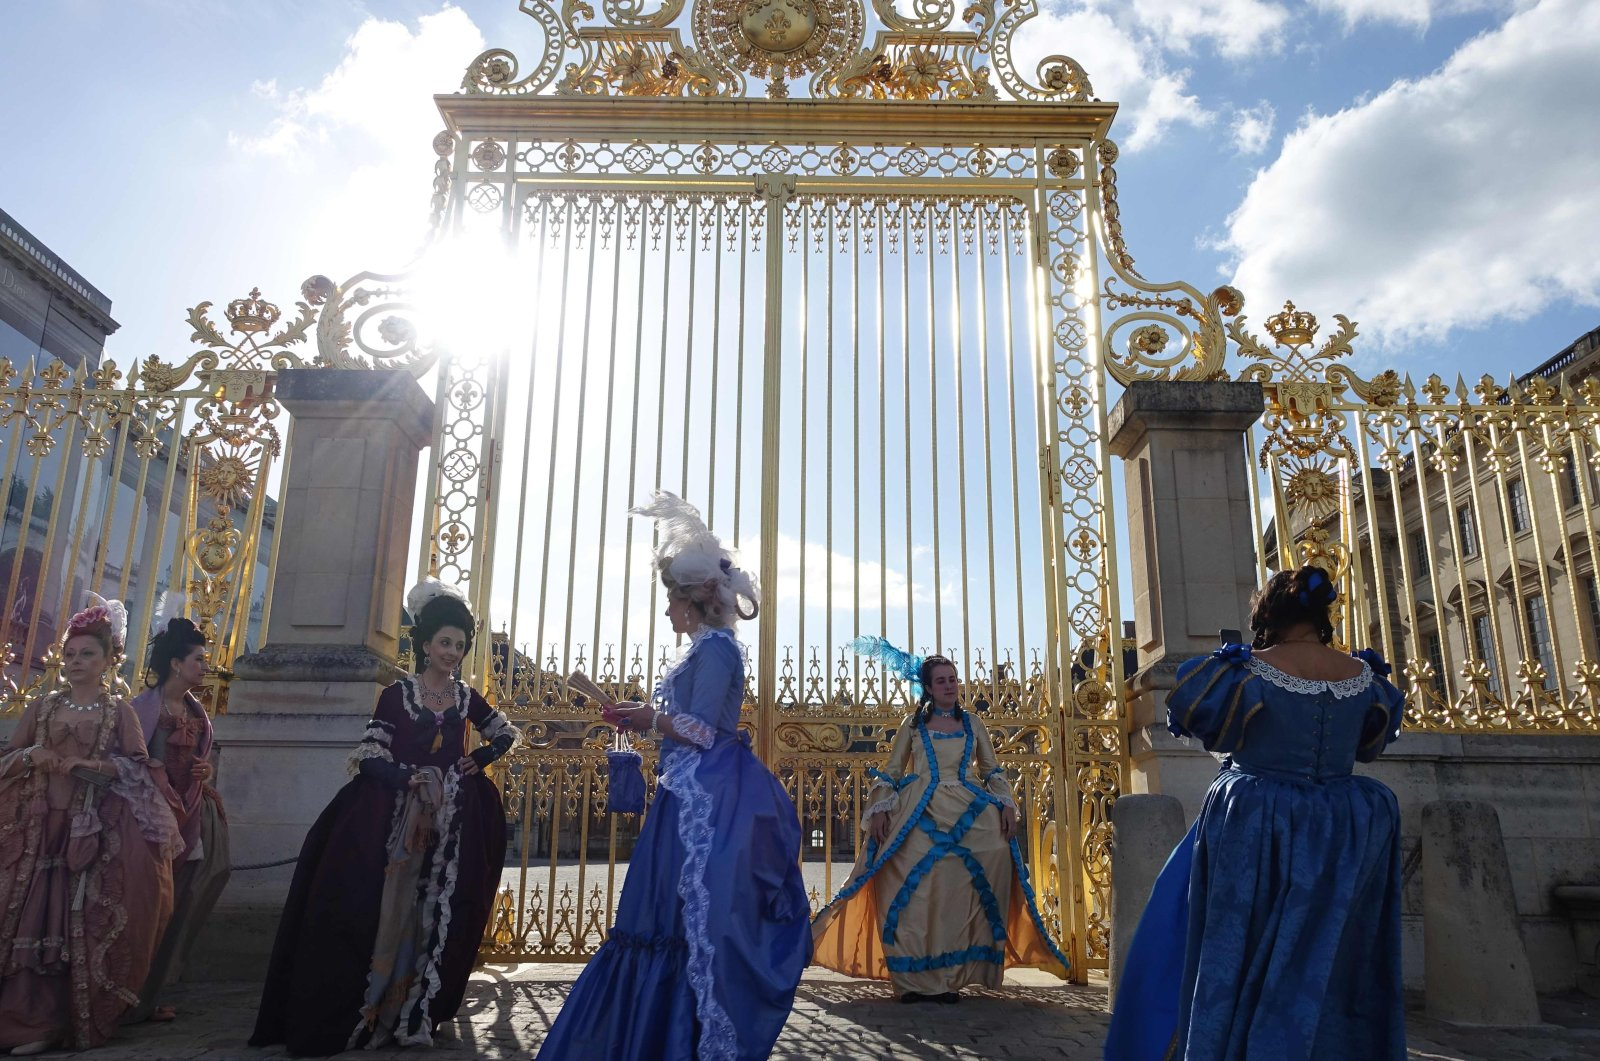 Women dressed in period costume wait for the gates of the Palace of Versailles to open as they prepare to participate in a festival as part of celebrations for The Year of Louis XIV, Versailles, June 1, 2015. (AFP Photo)